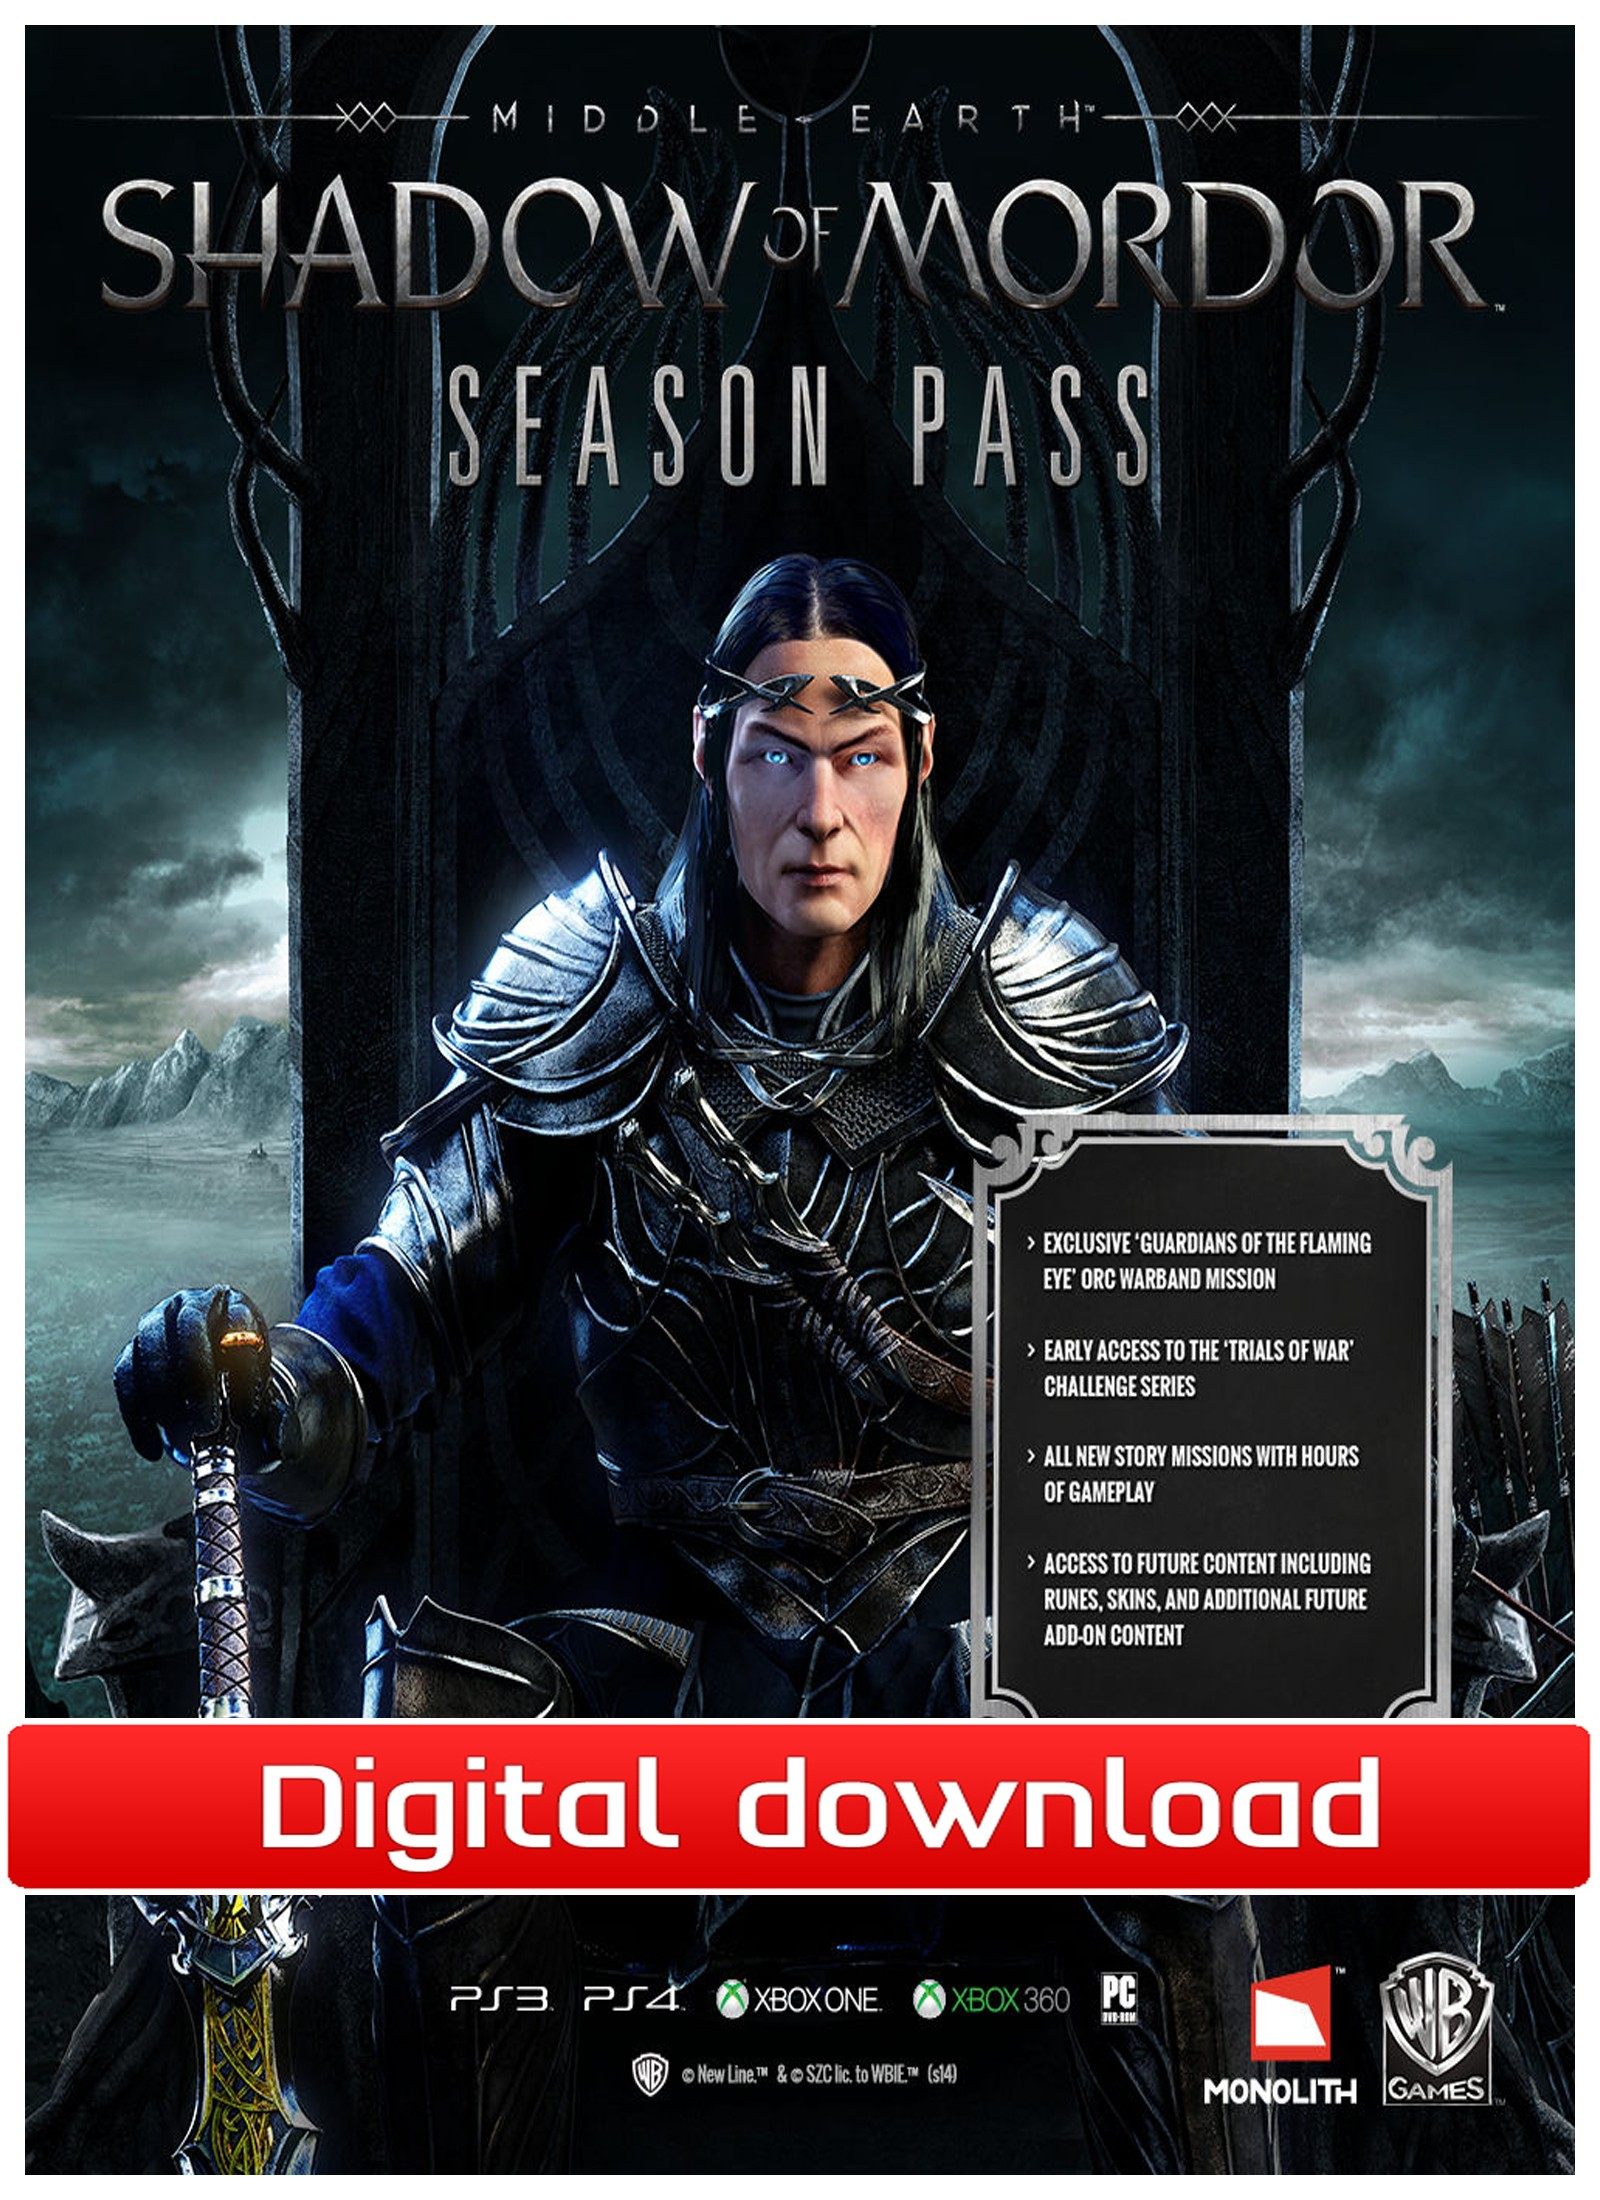 36311 : Middle-earth: Shadow of Mordor, Season Pass (PC nedl)